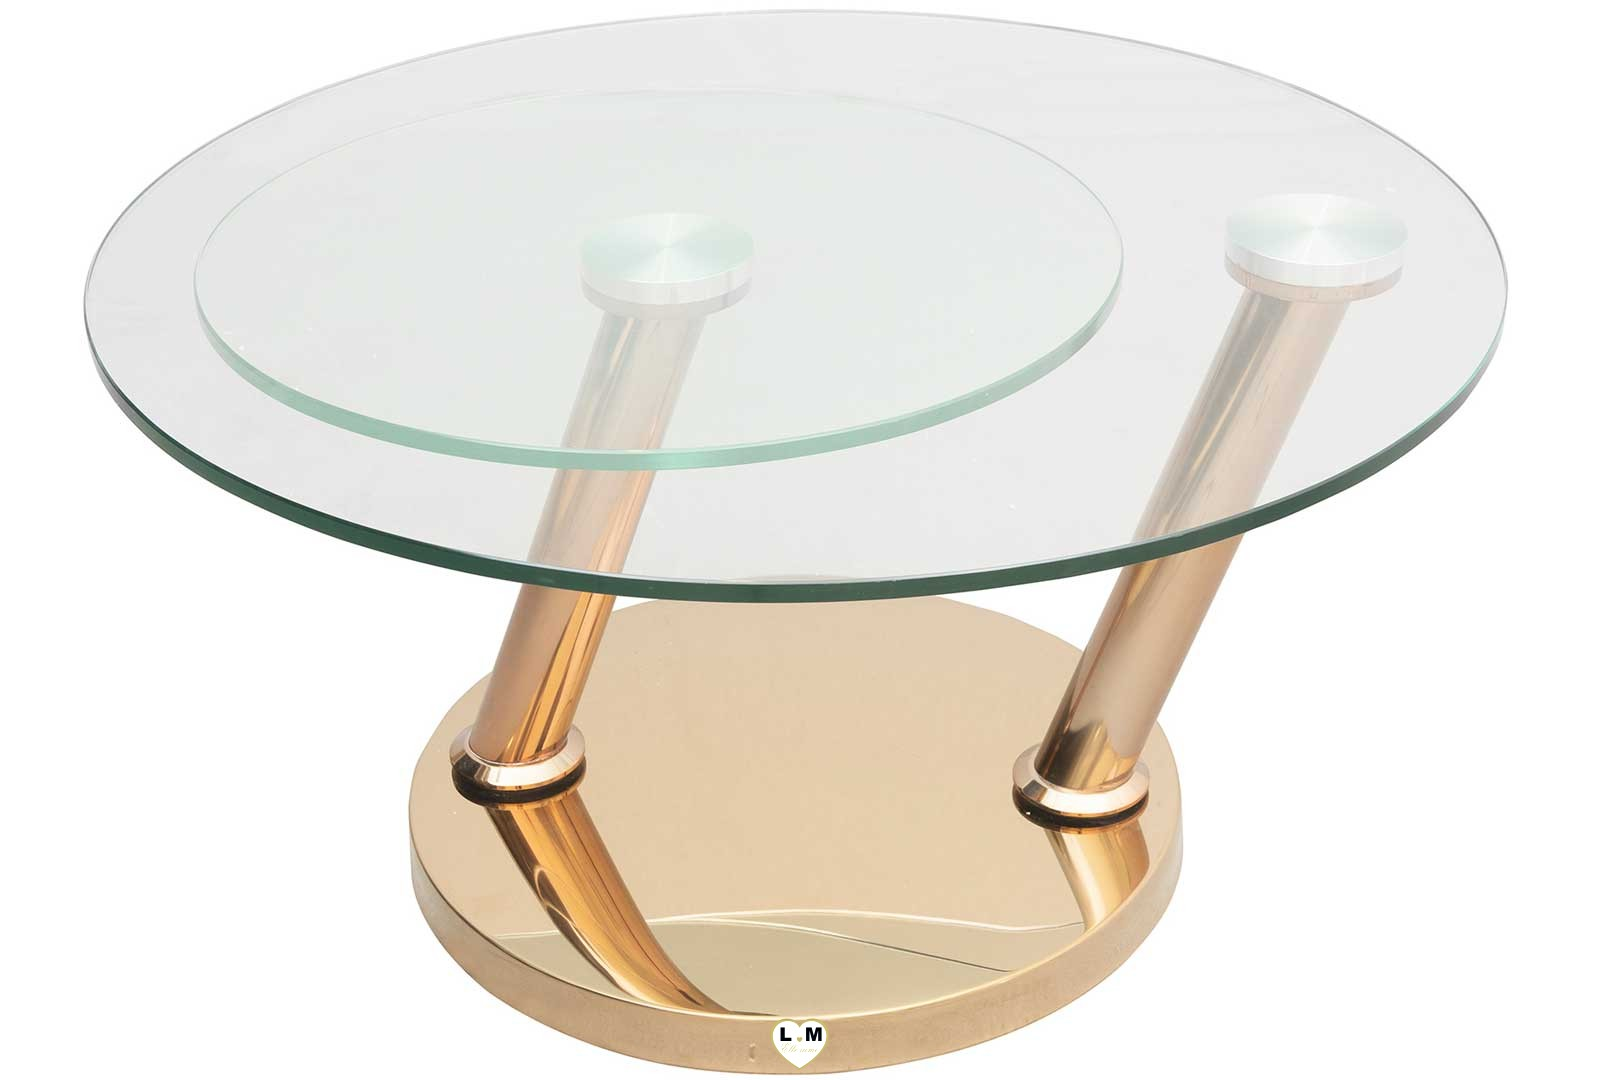 luxembourg chrome dore table basse verre articulee lignemeuble com. Black Bedroom Furniture Sets. Home Design Ideas